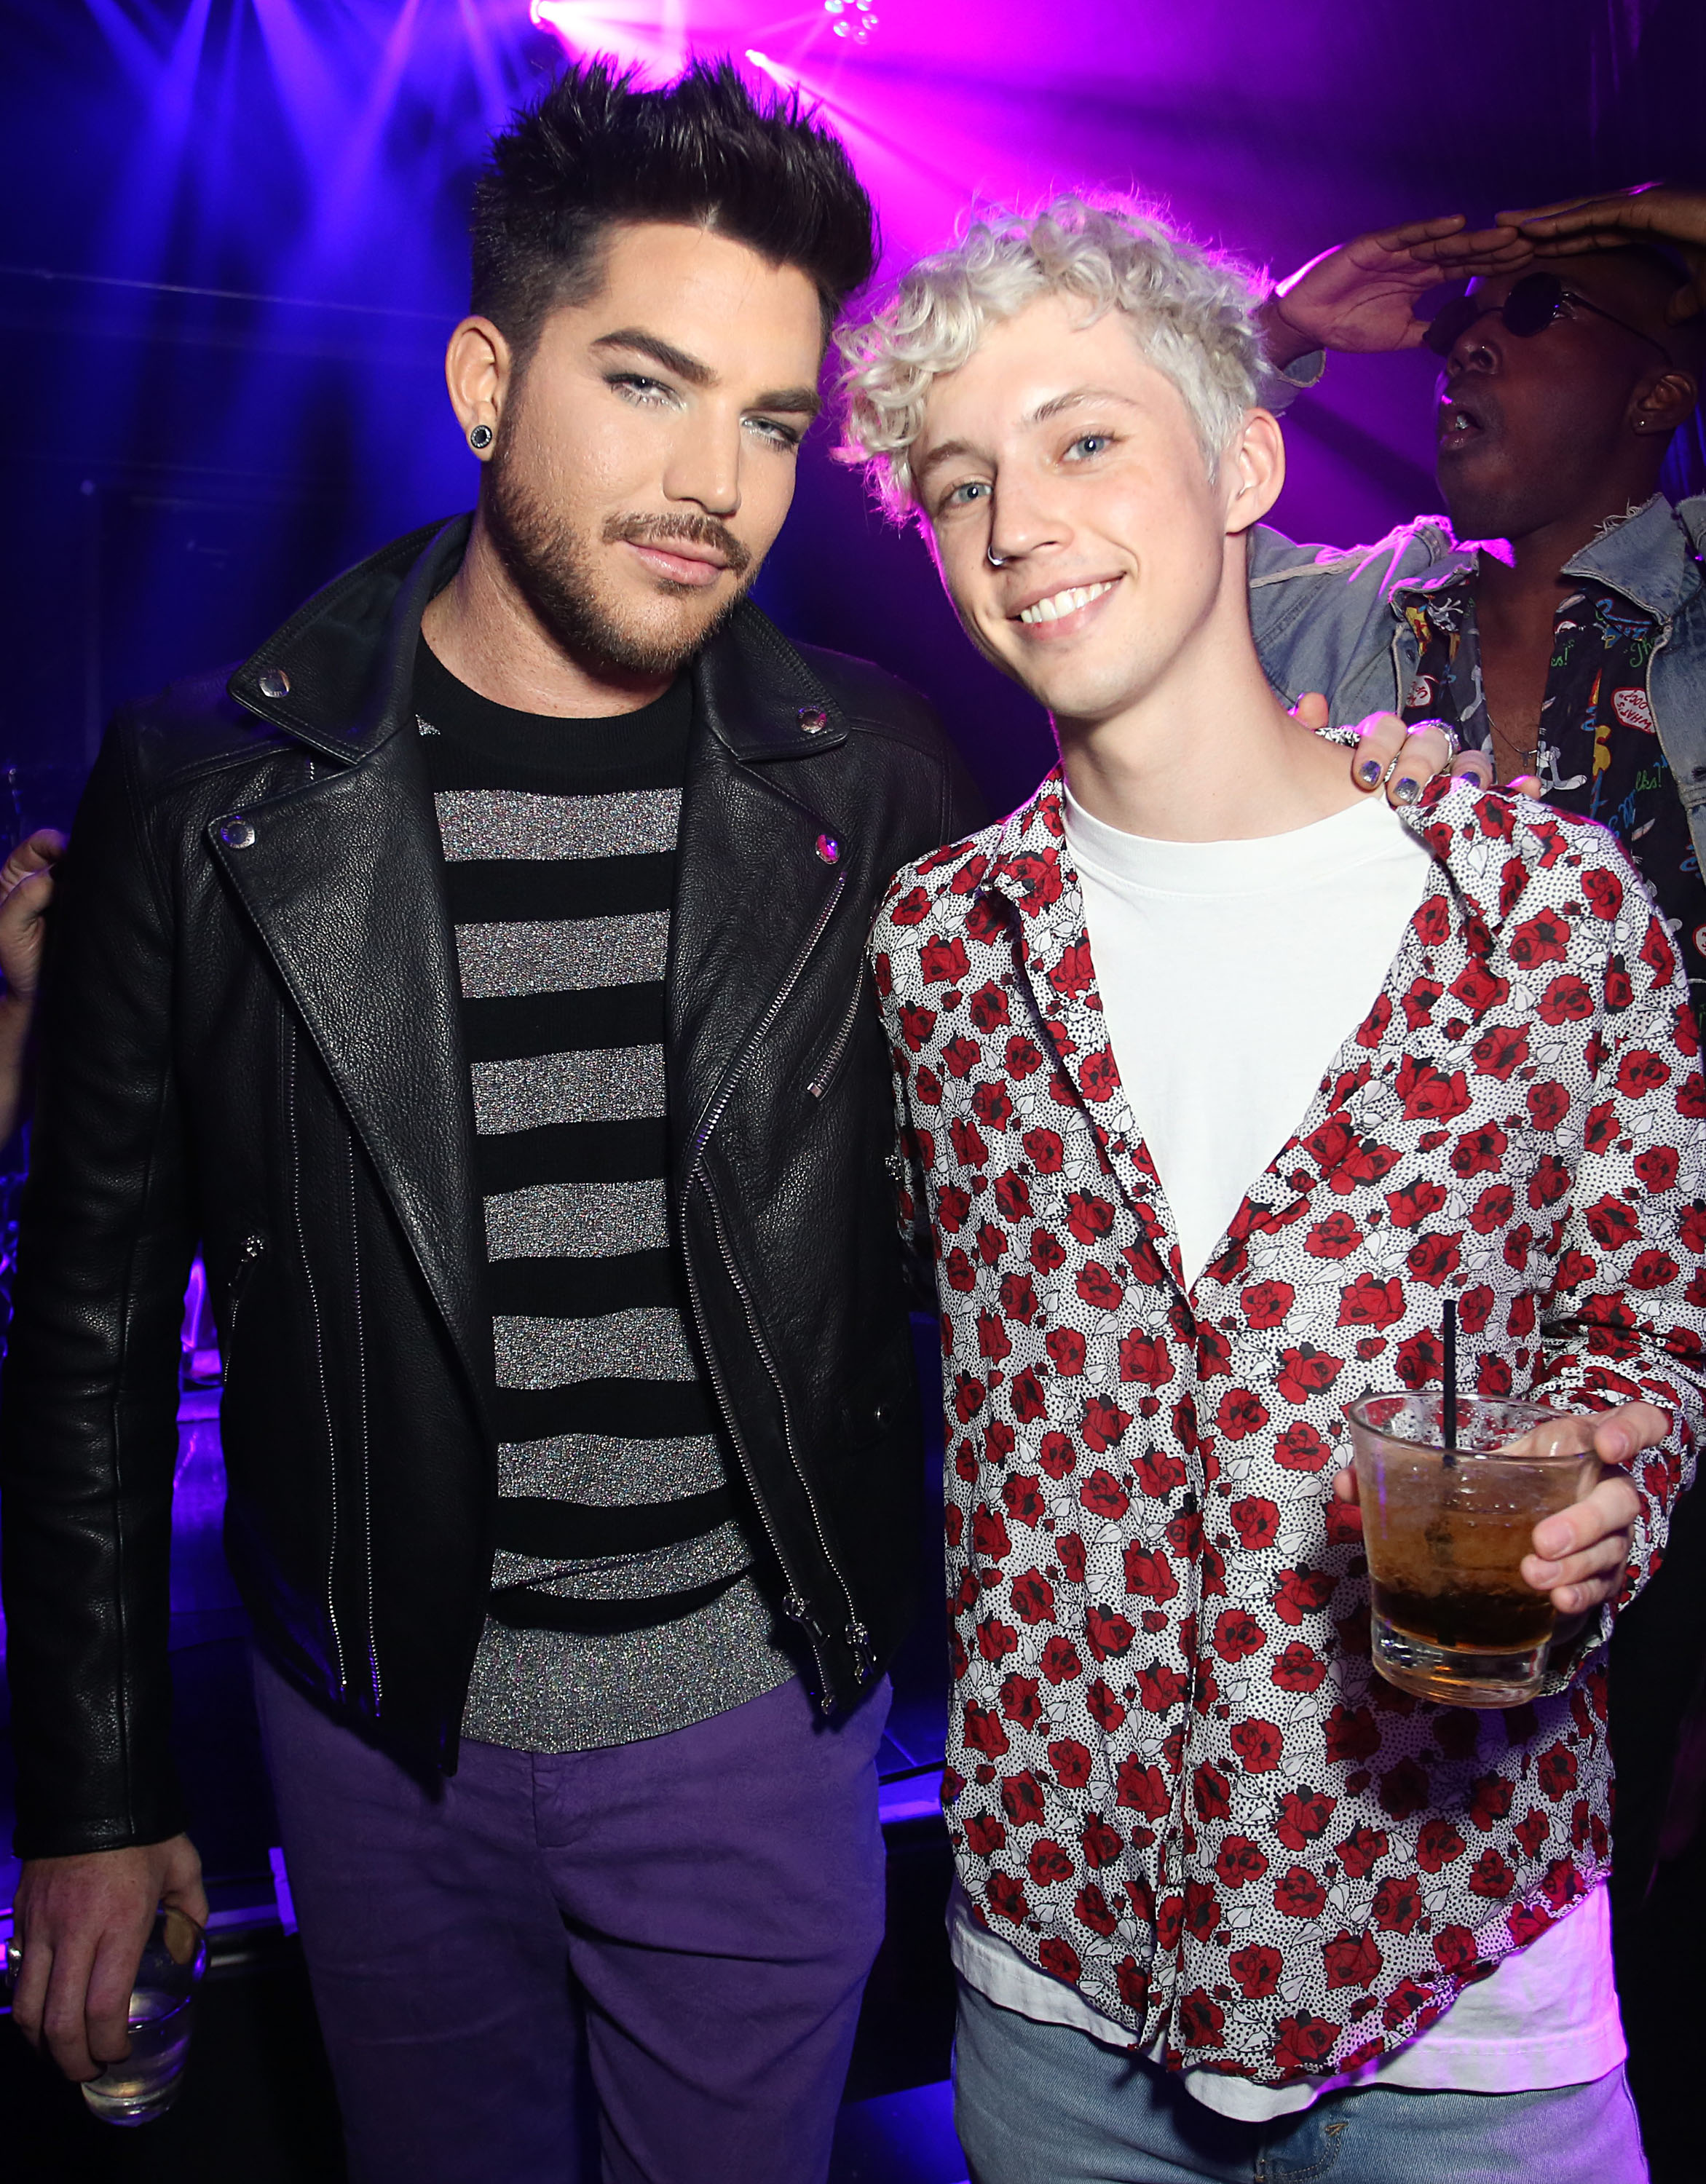 Adam Lambert and Troye Sivan attend the 'Believer' Spirit Day Concert presented by Justin Tranter and GLAAD at Sayer's Club on October 18, 2017 in Los Angeles